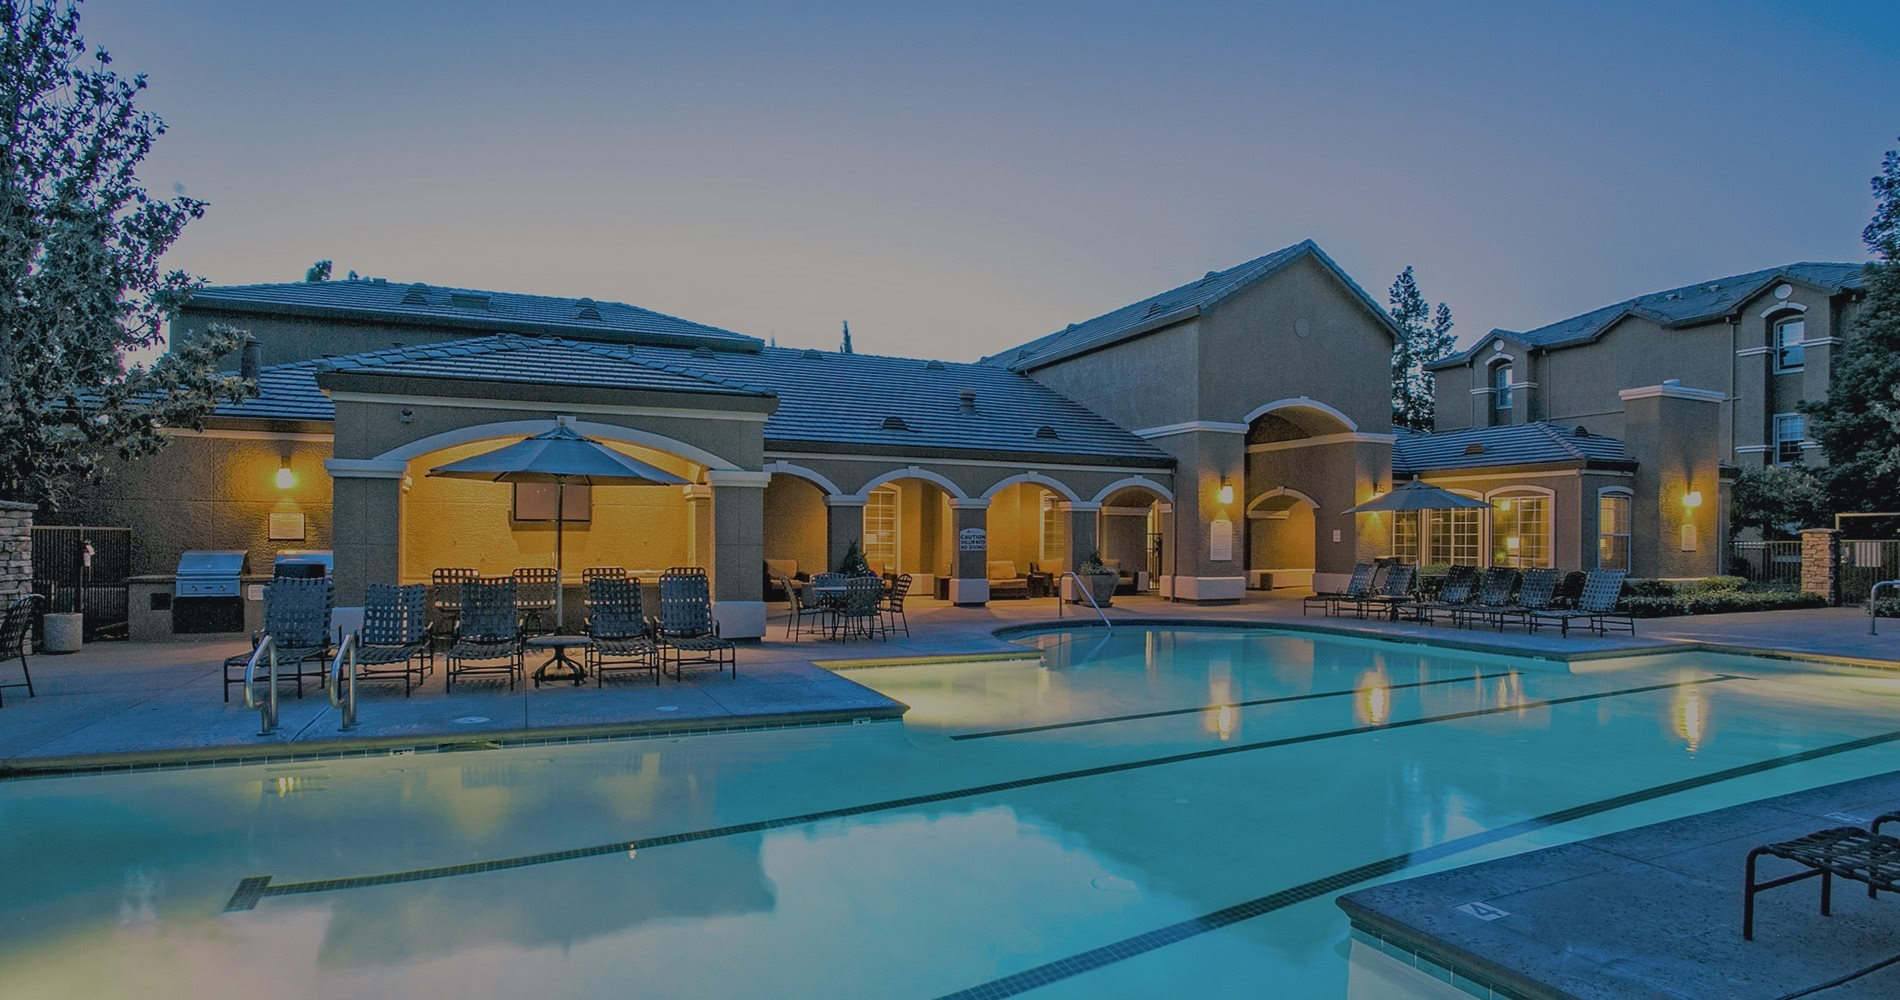 Crystal Clear Swimming Pool at Rolling Oaks Apartment Homes in Fairfield, CA 94534